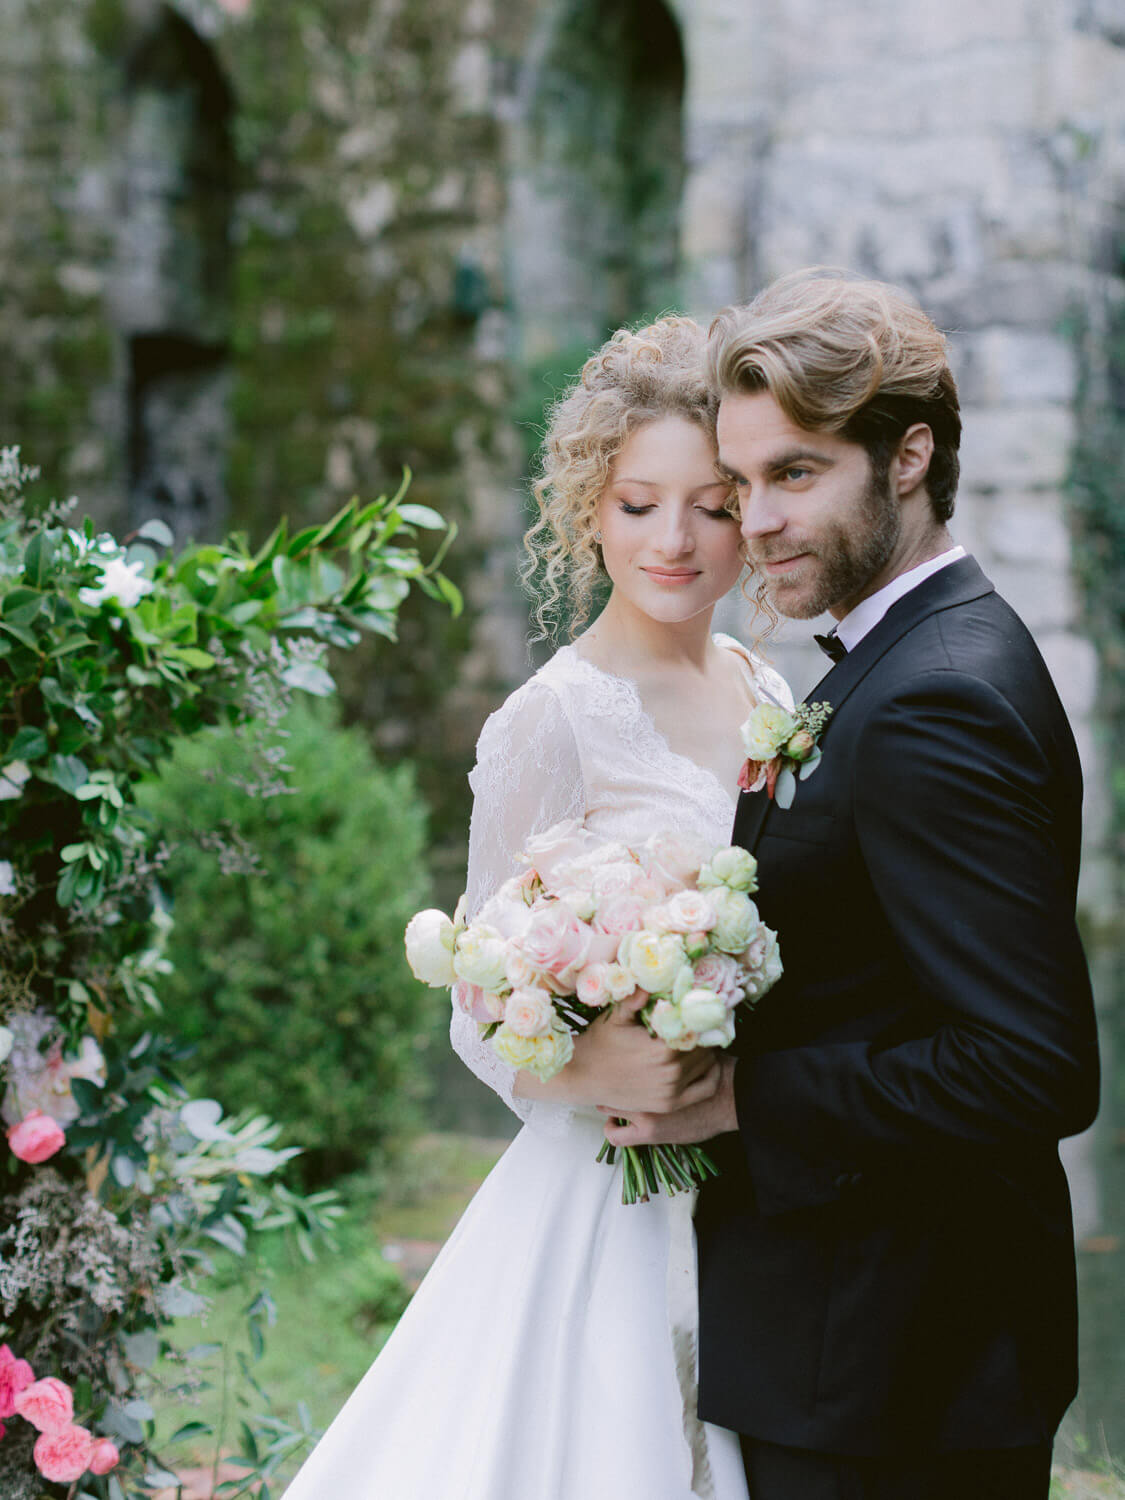 sweet and romantic wedding couple portrait by Portugal Wedding Photographer